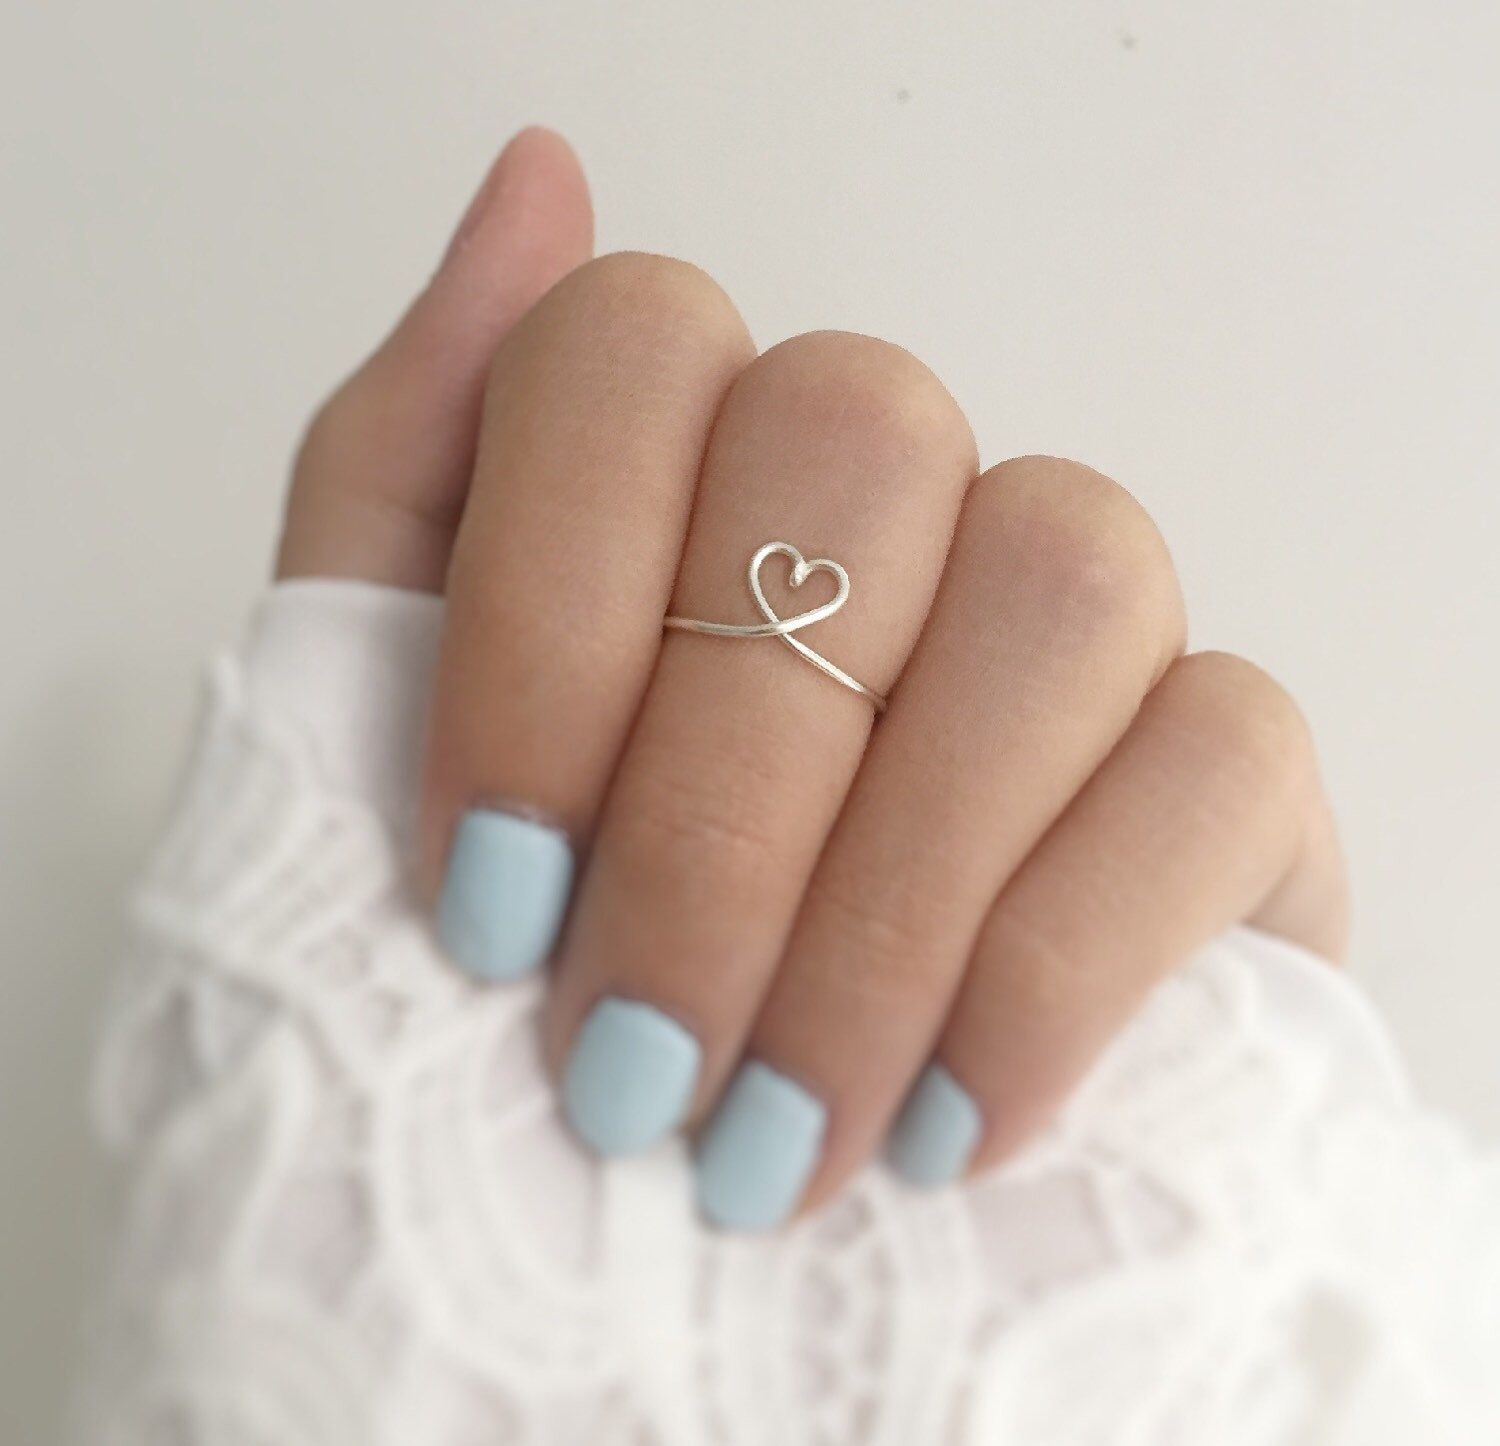 piercing rings trend popsugar engagement nurse ring fashion